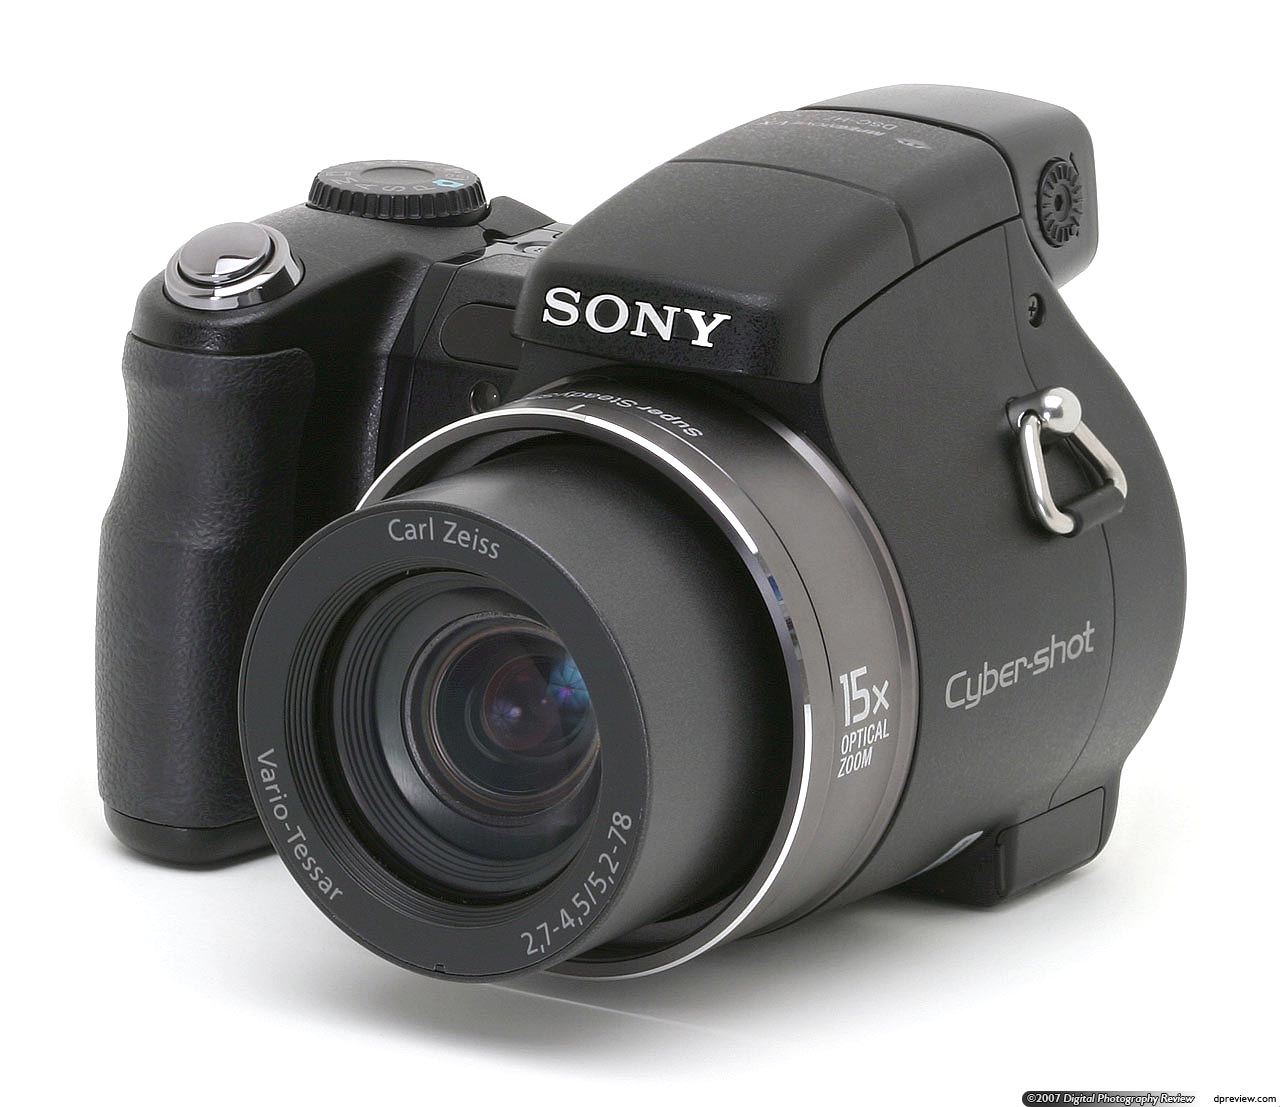 sony cyber shot dsc h7 review digital photography review rh dpreview com Sony Cyber-shot Memory Stick for Sony Super Steady Shot